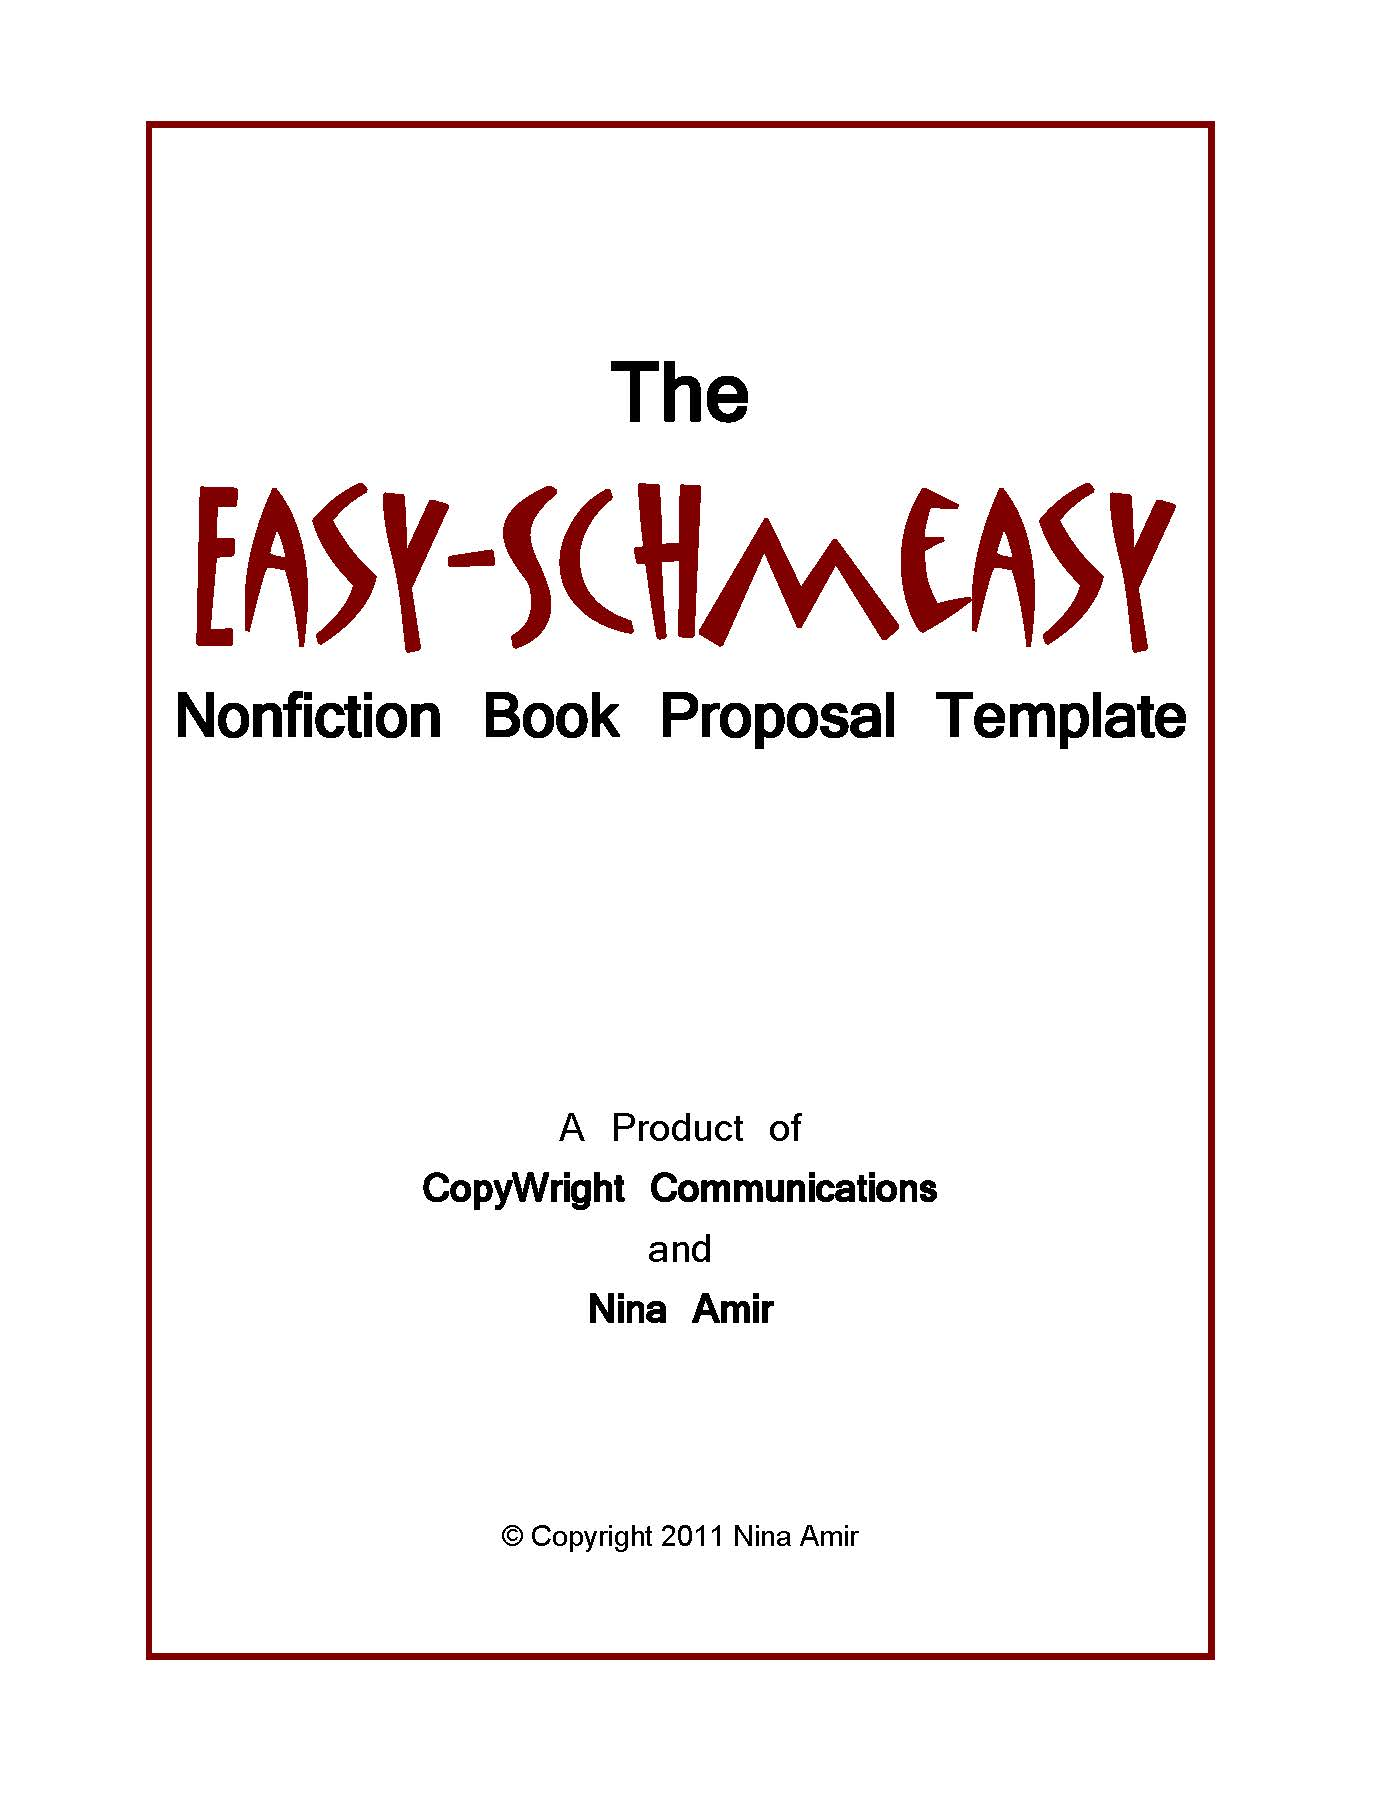 easy schmeasy book proposal template write nonfiction now